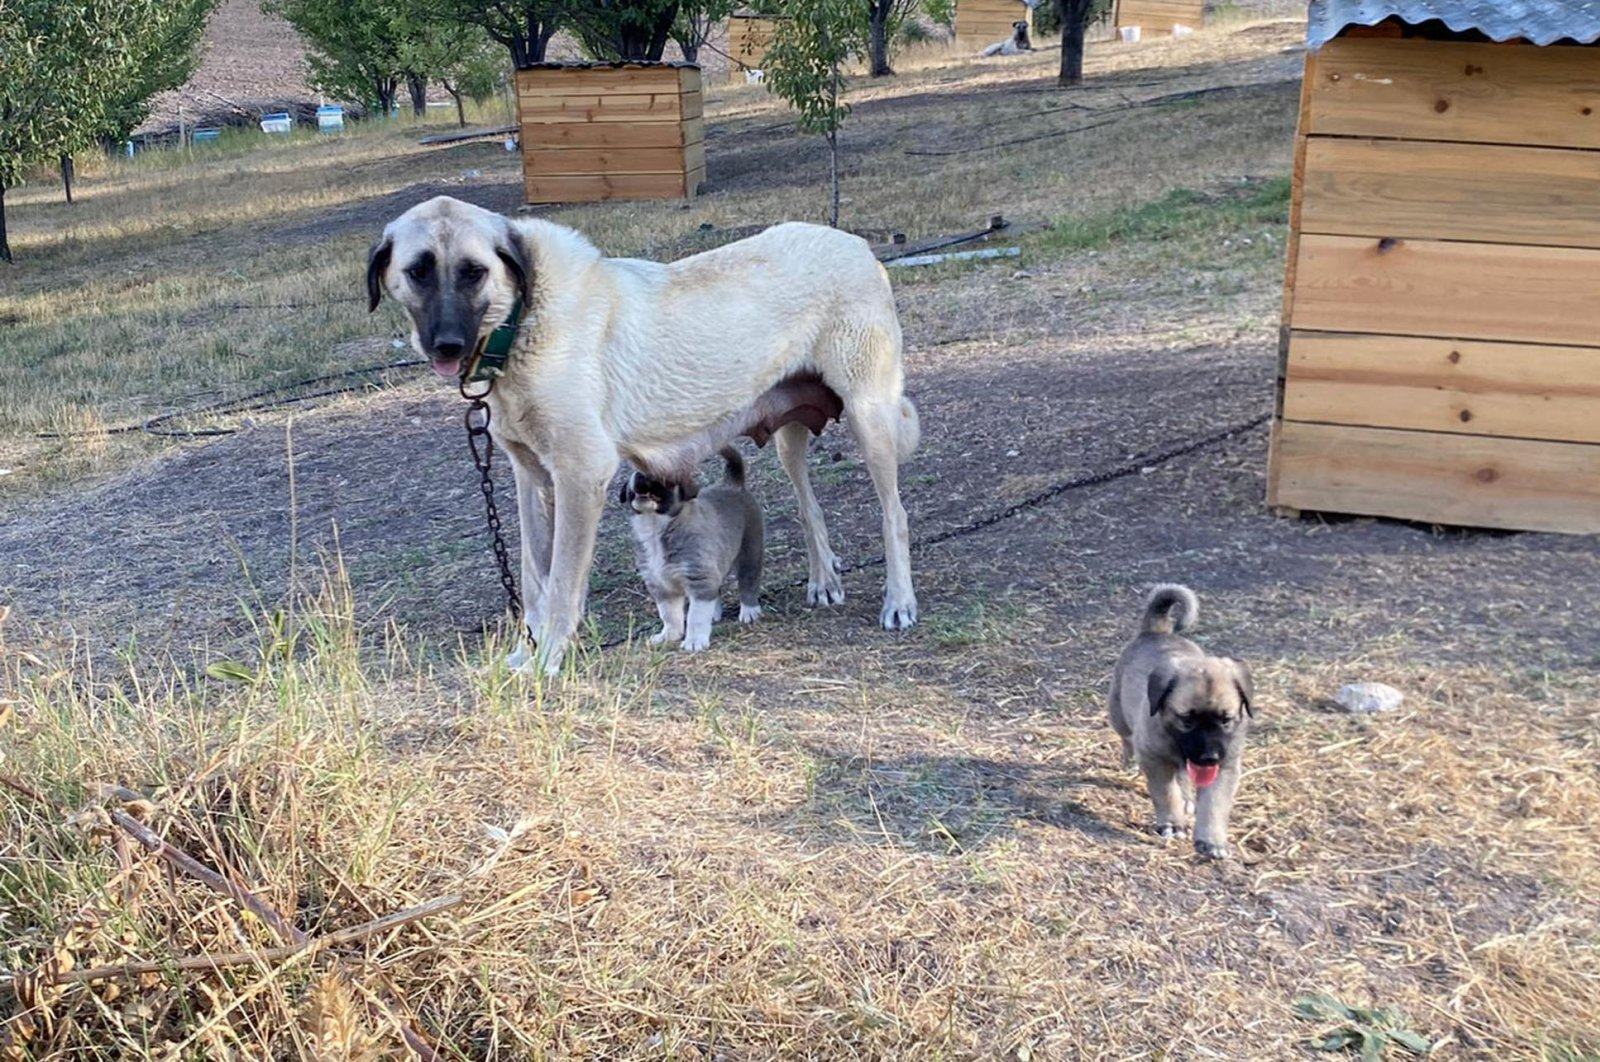 A Kangal dog nurses her puppy while another puppy plays nearby, in Sivas, central Turkey, Sept. 2, 2020. (DHA Photo)